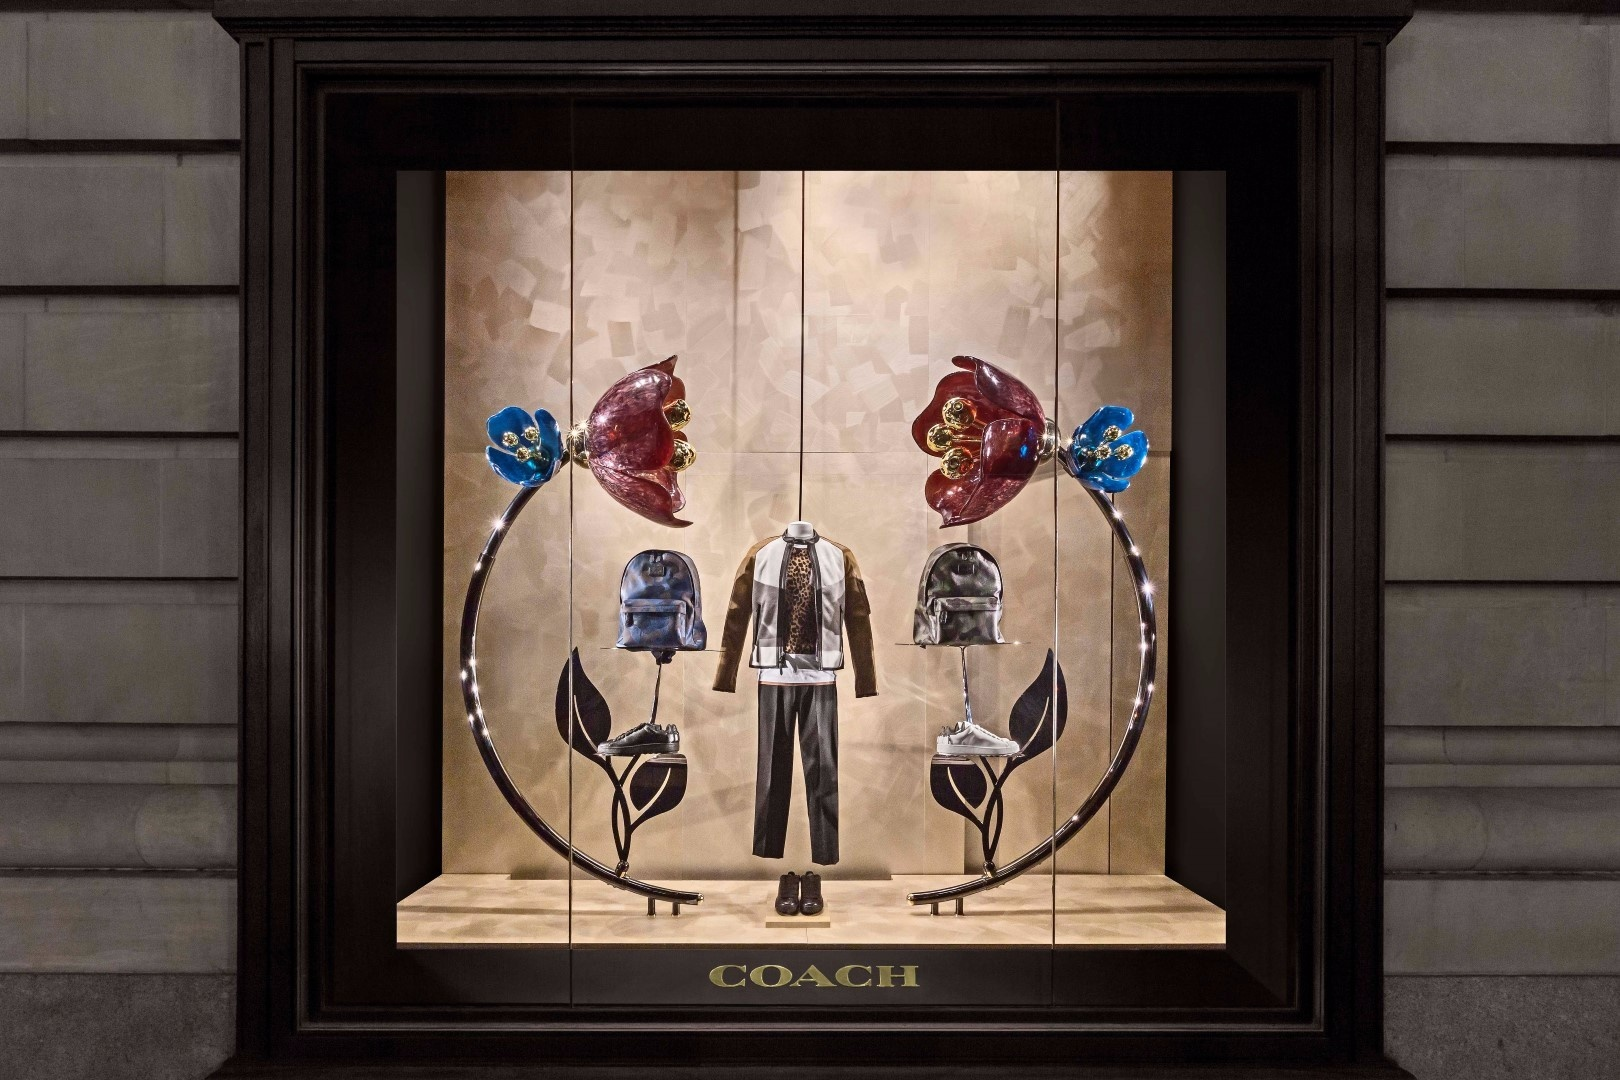 Booma group coach bloom window new york booma group coach bloom window new york jeuxipadfo Gallery